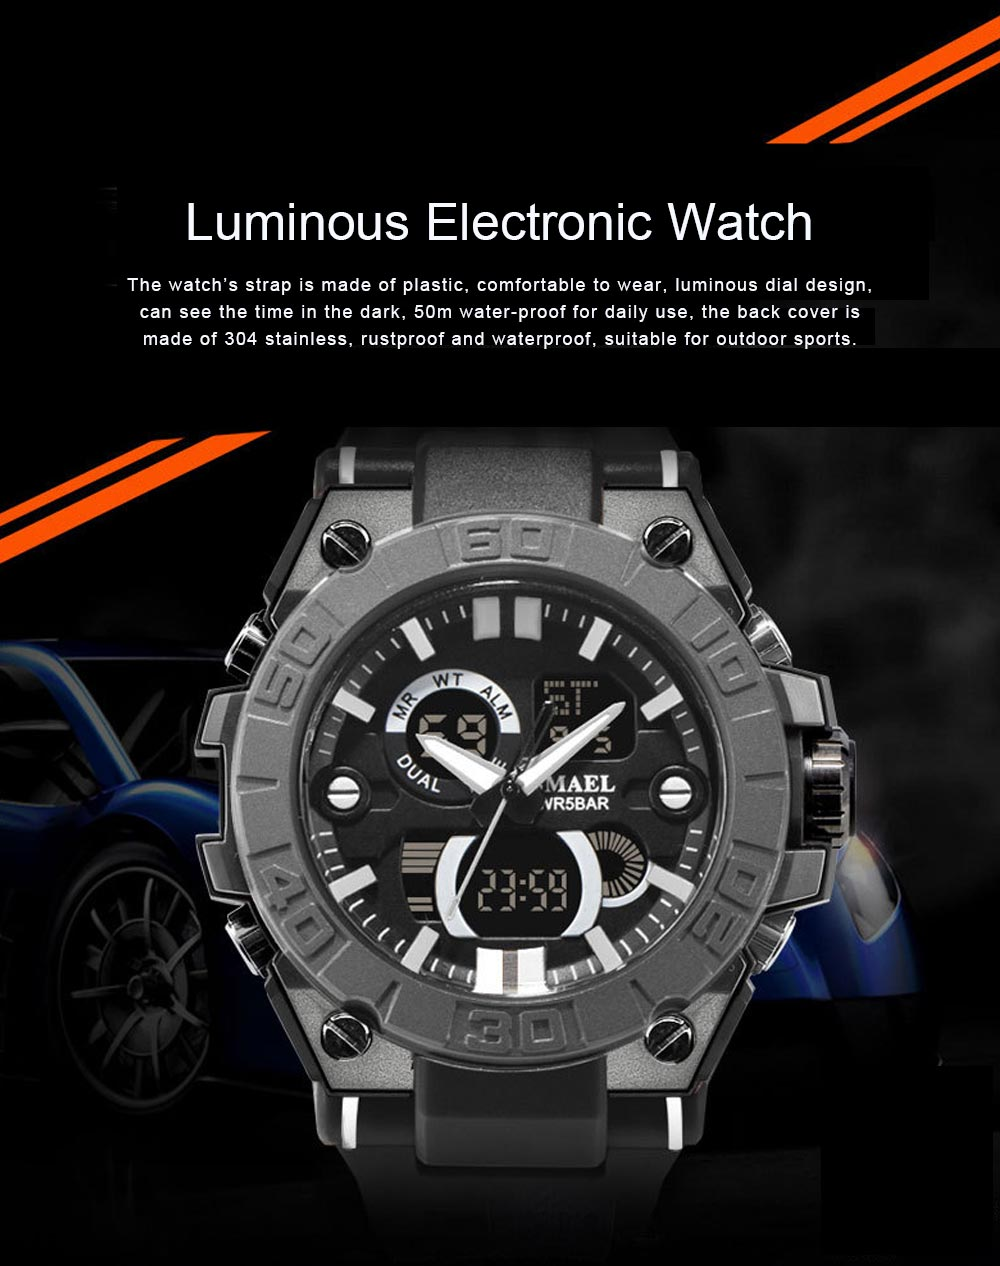 New Watch for Men Outdoor Sports Waterproof Double Display Multifunctional Luminous Electronic Watch 0